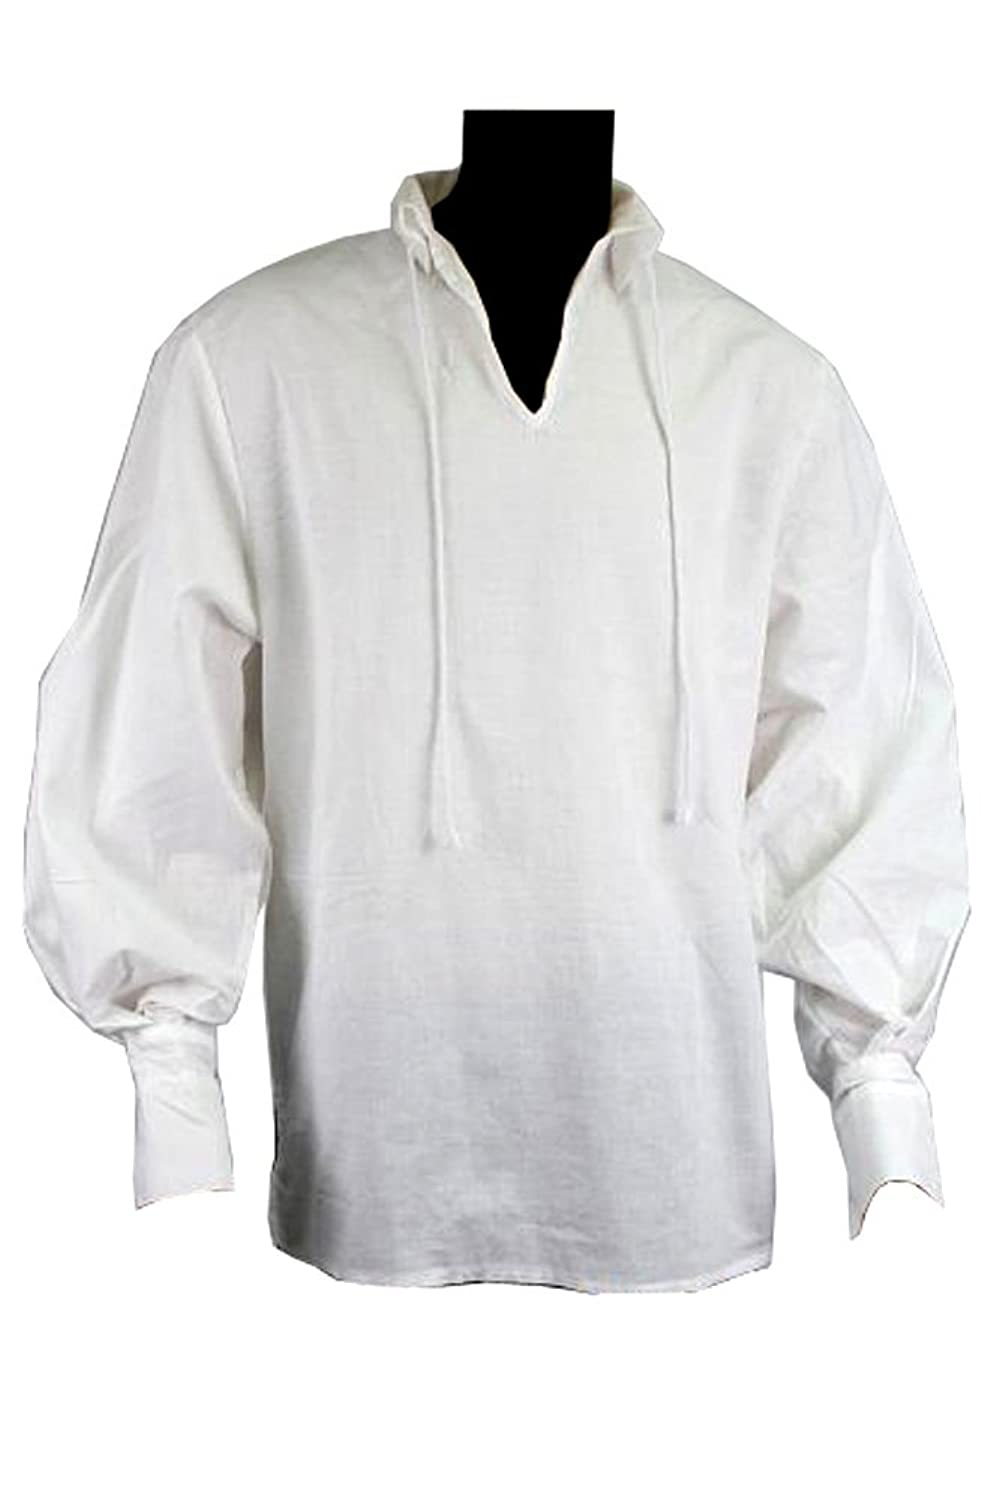 Exact Replica Jack Sparrow Pirate Shirt with Open Neck Collar by The Costume Base